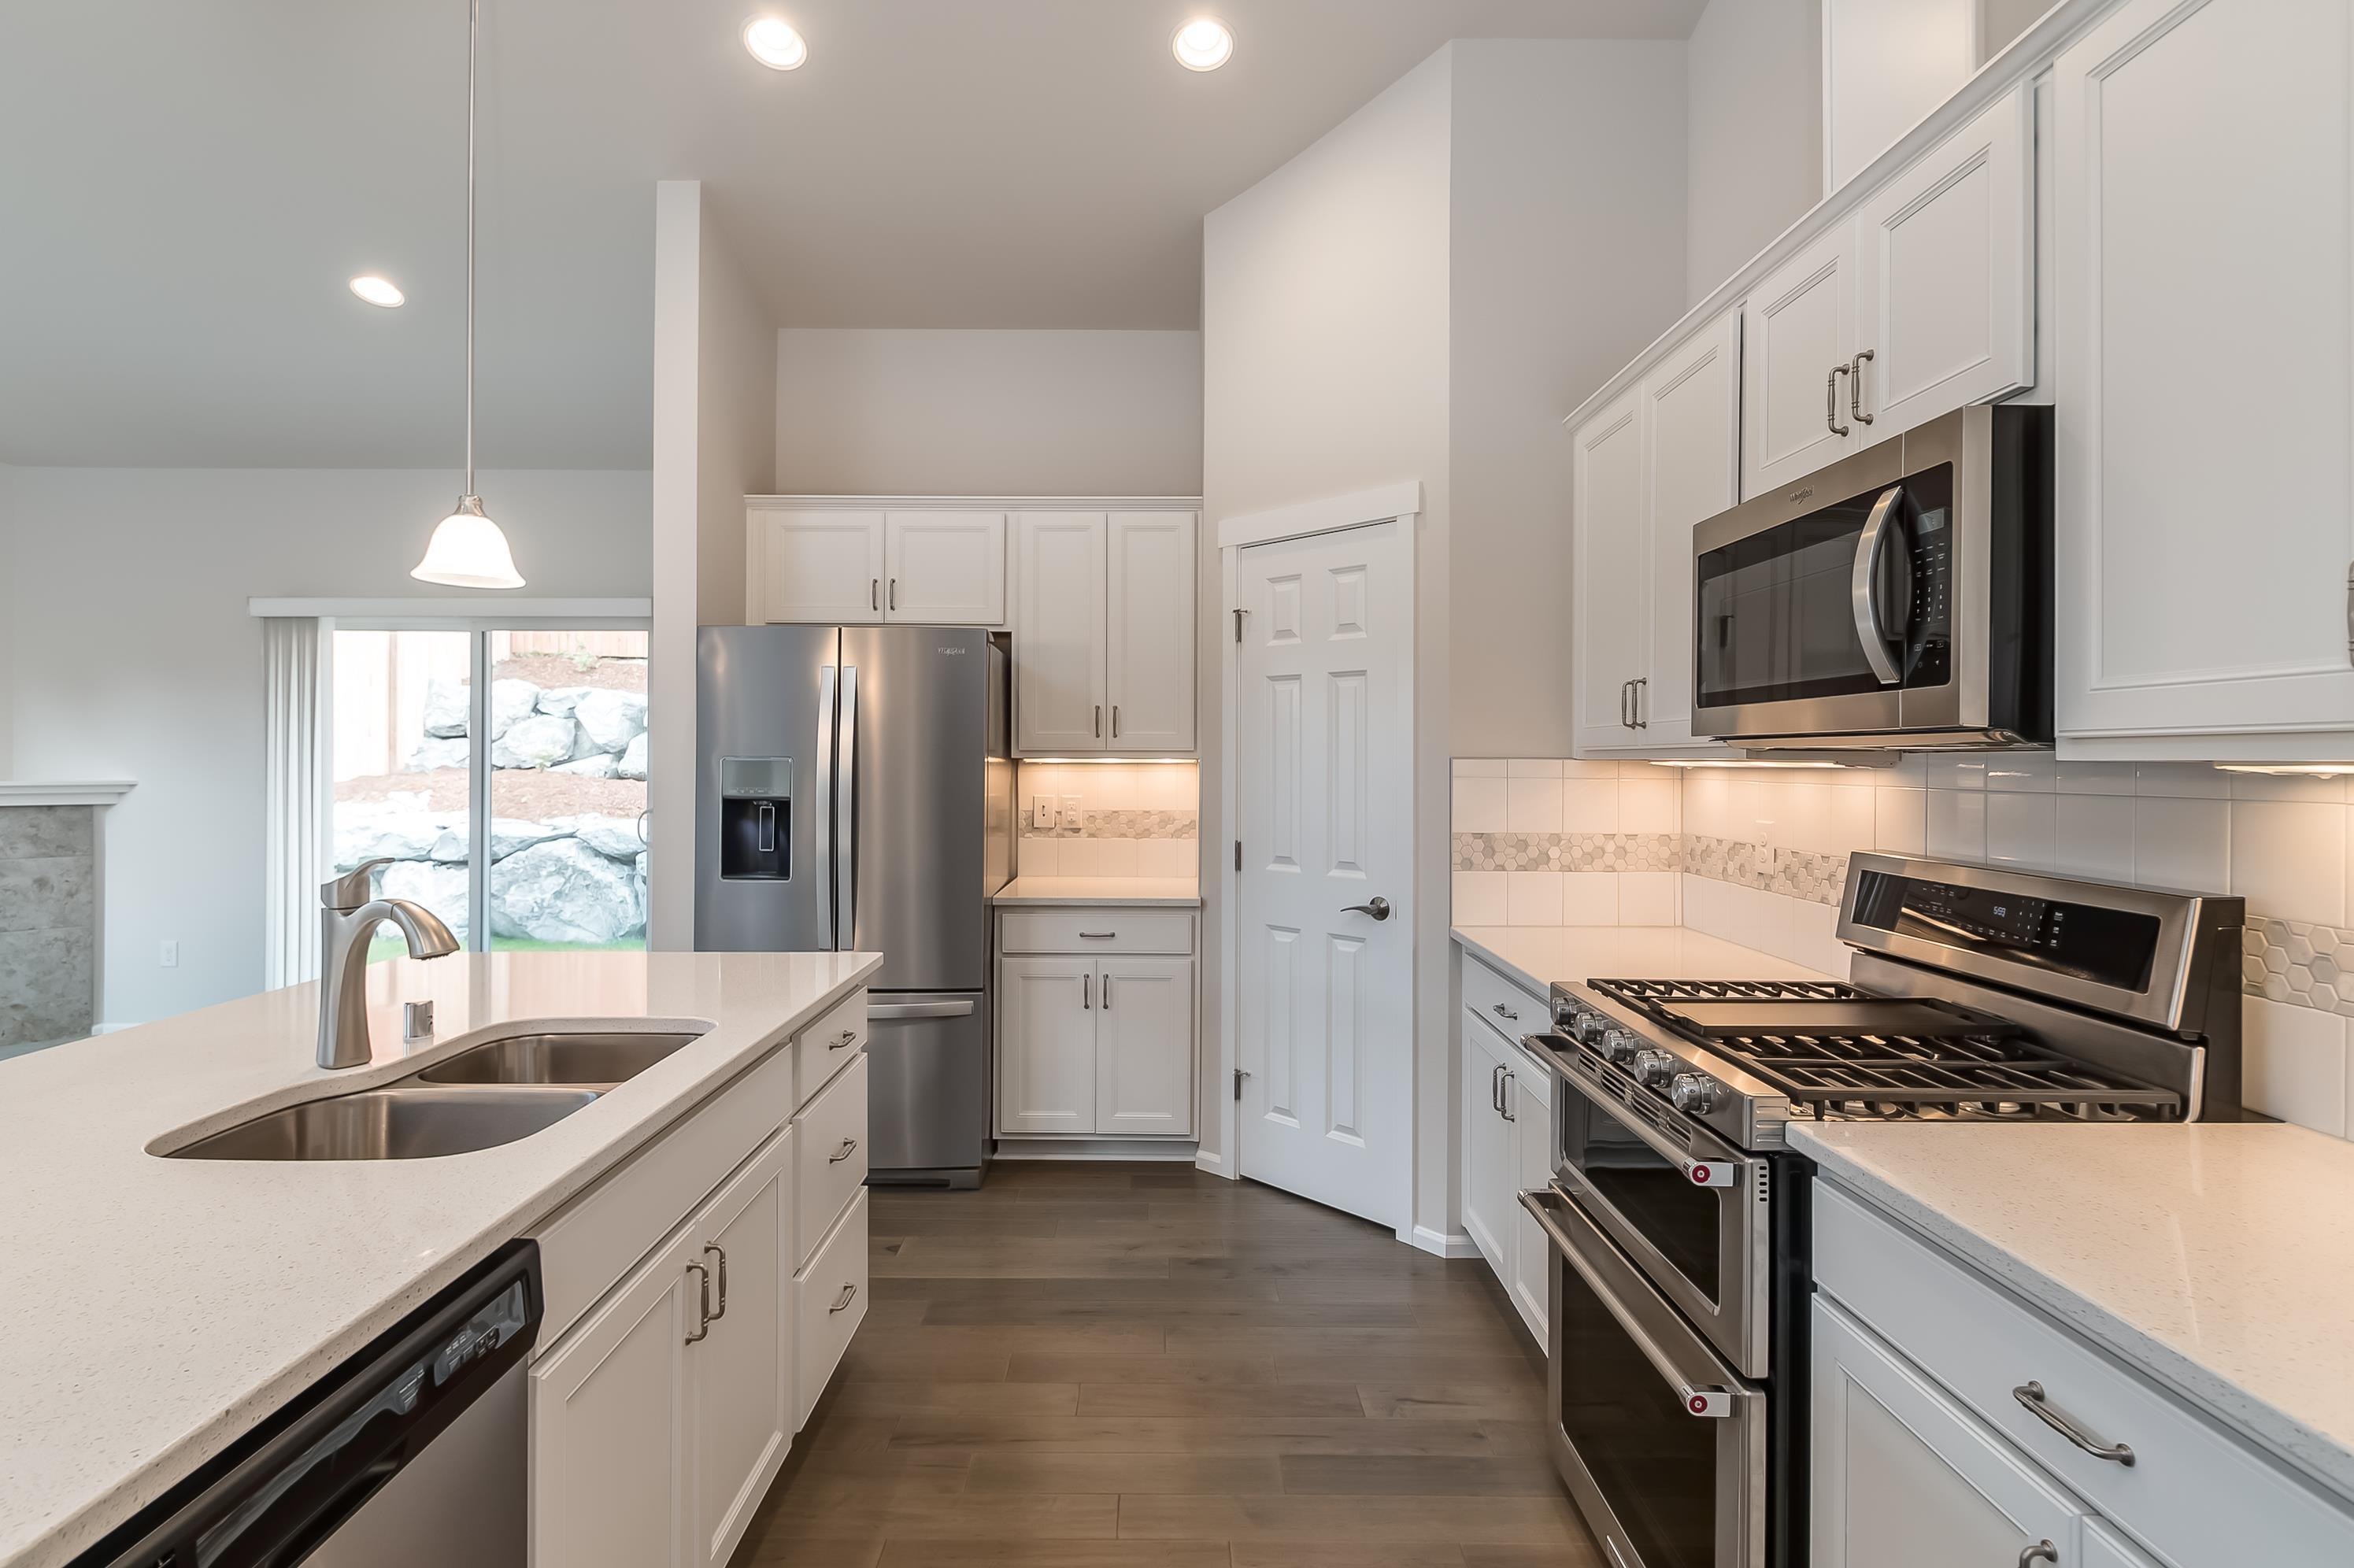 Kitchen featured in the CC Laurel By Landed Gentry Homes in Bellingham, WA